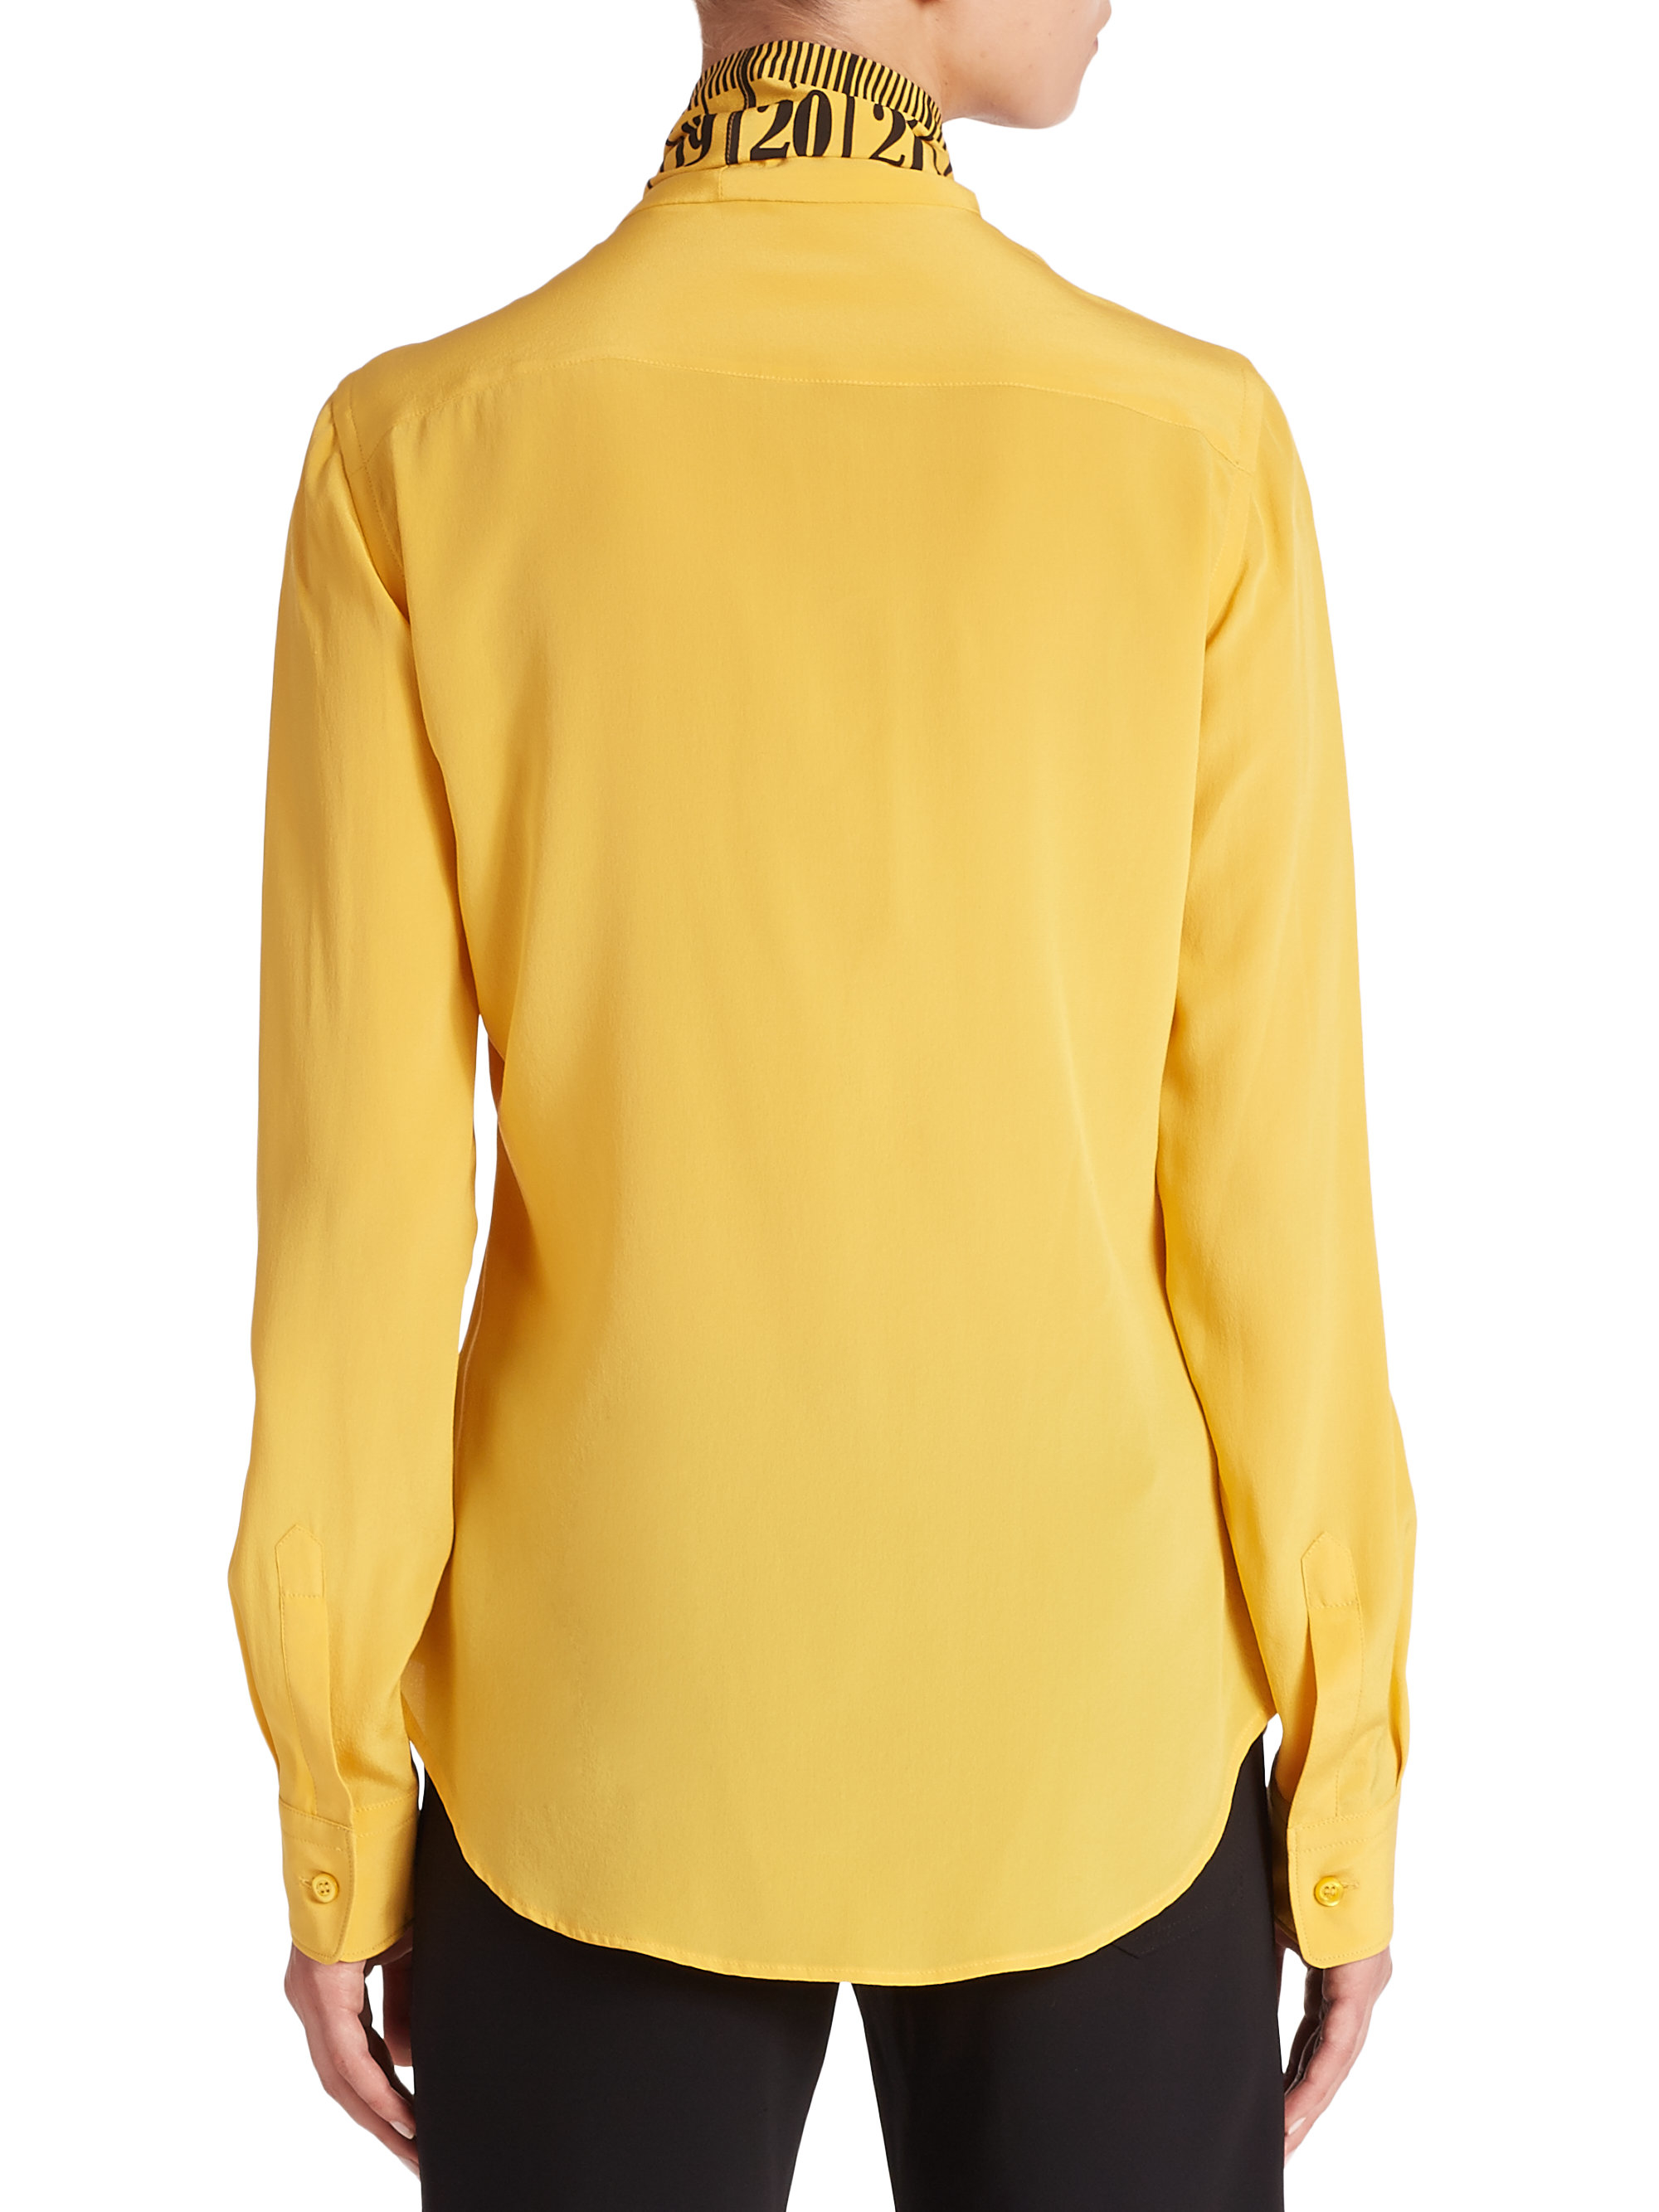 Lyst Moschino Measuring Tape Silk Blouse in Yellow